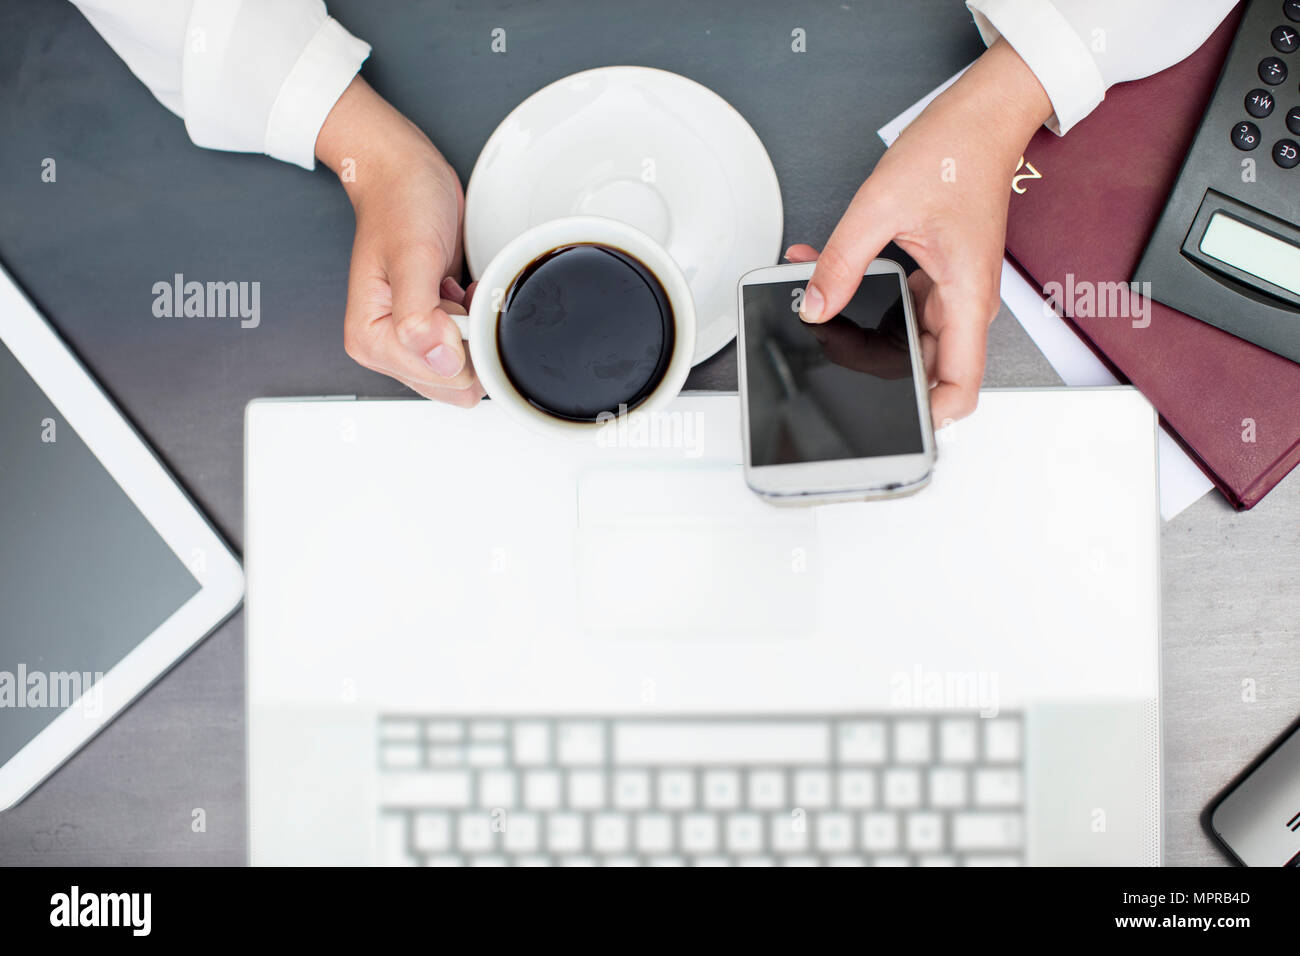 Woman with cup of coffee using smartphone, laptop - Stock Image